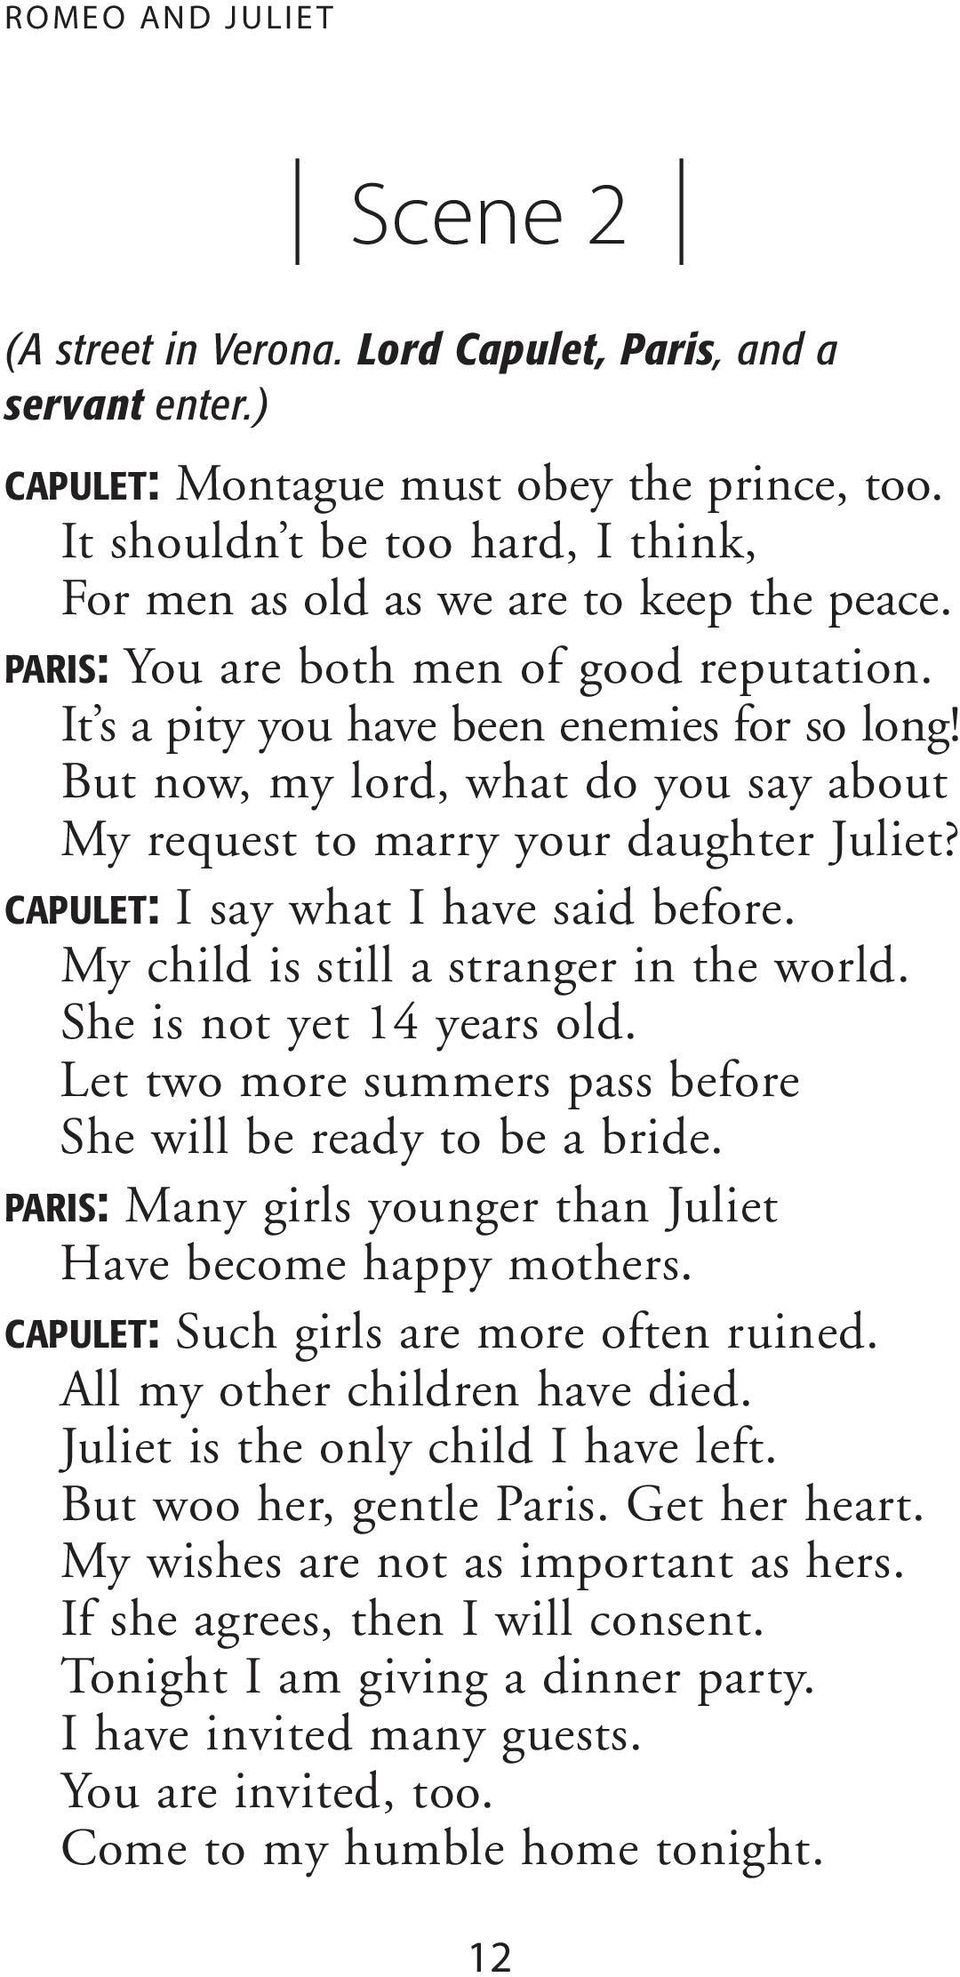 But now, my lord, what do you say about My request to marry your daughter Juliet? CAPULET: I say what I have said before. My child is still a stranger in the world. She is not yet 14 years old.